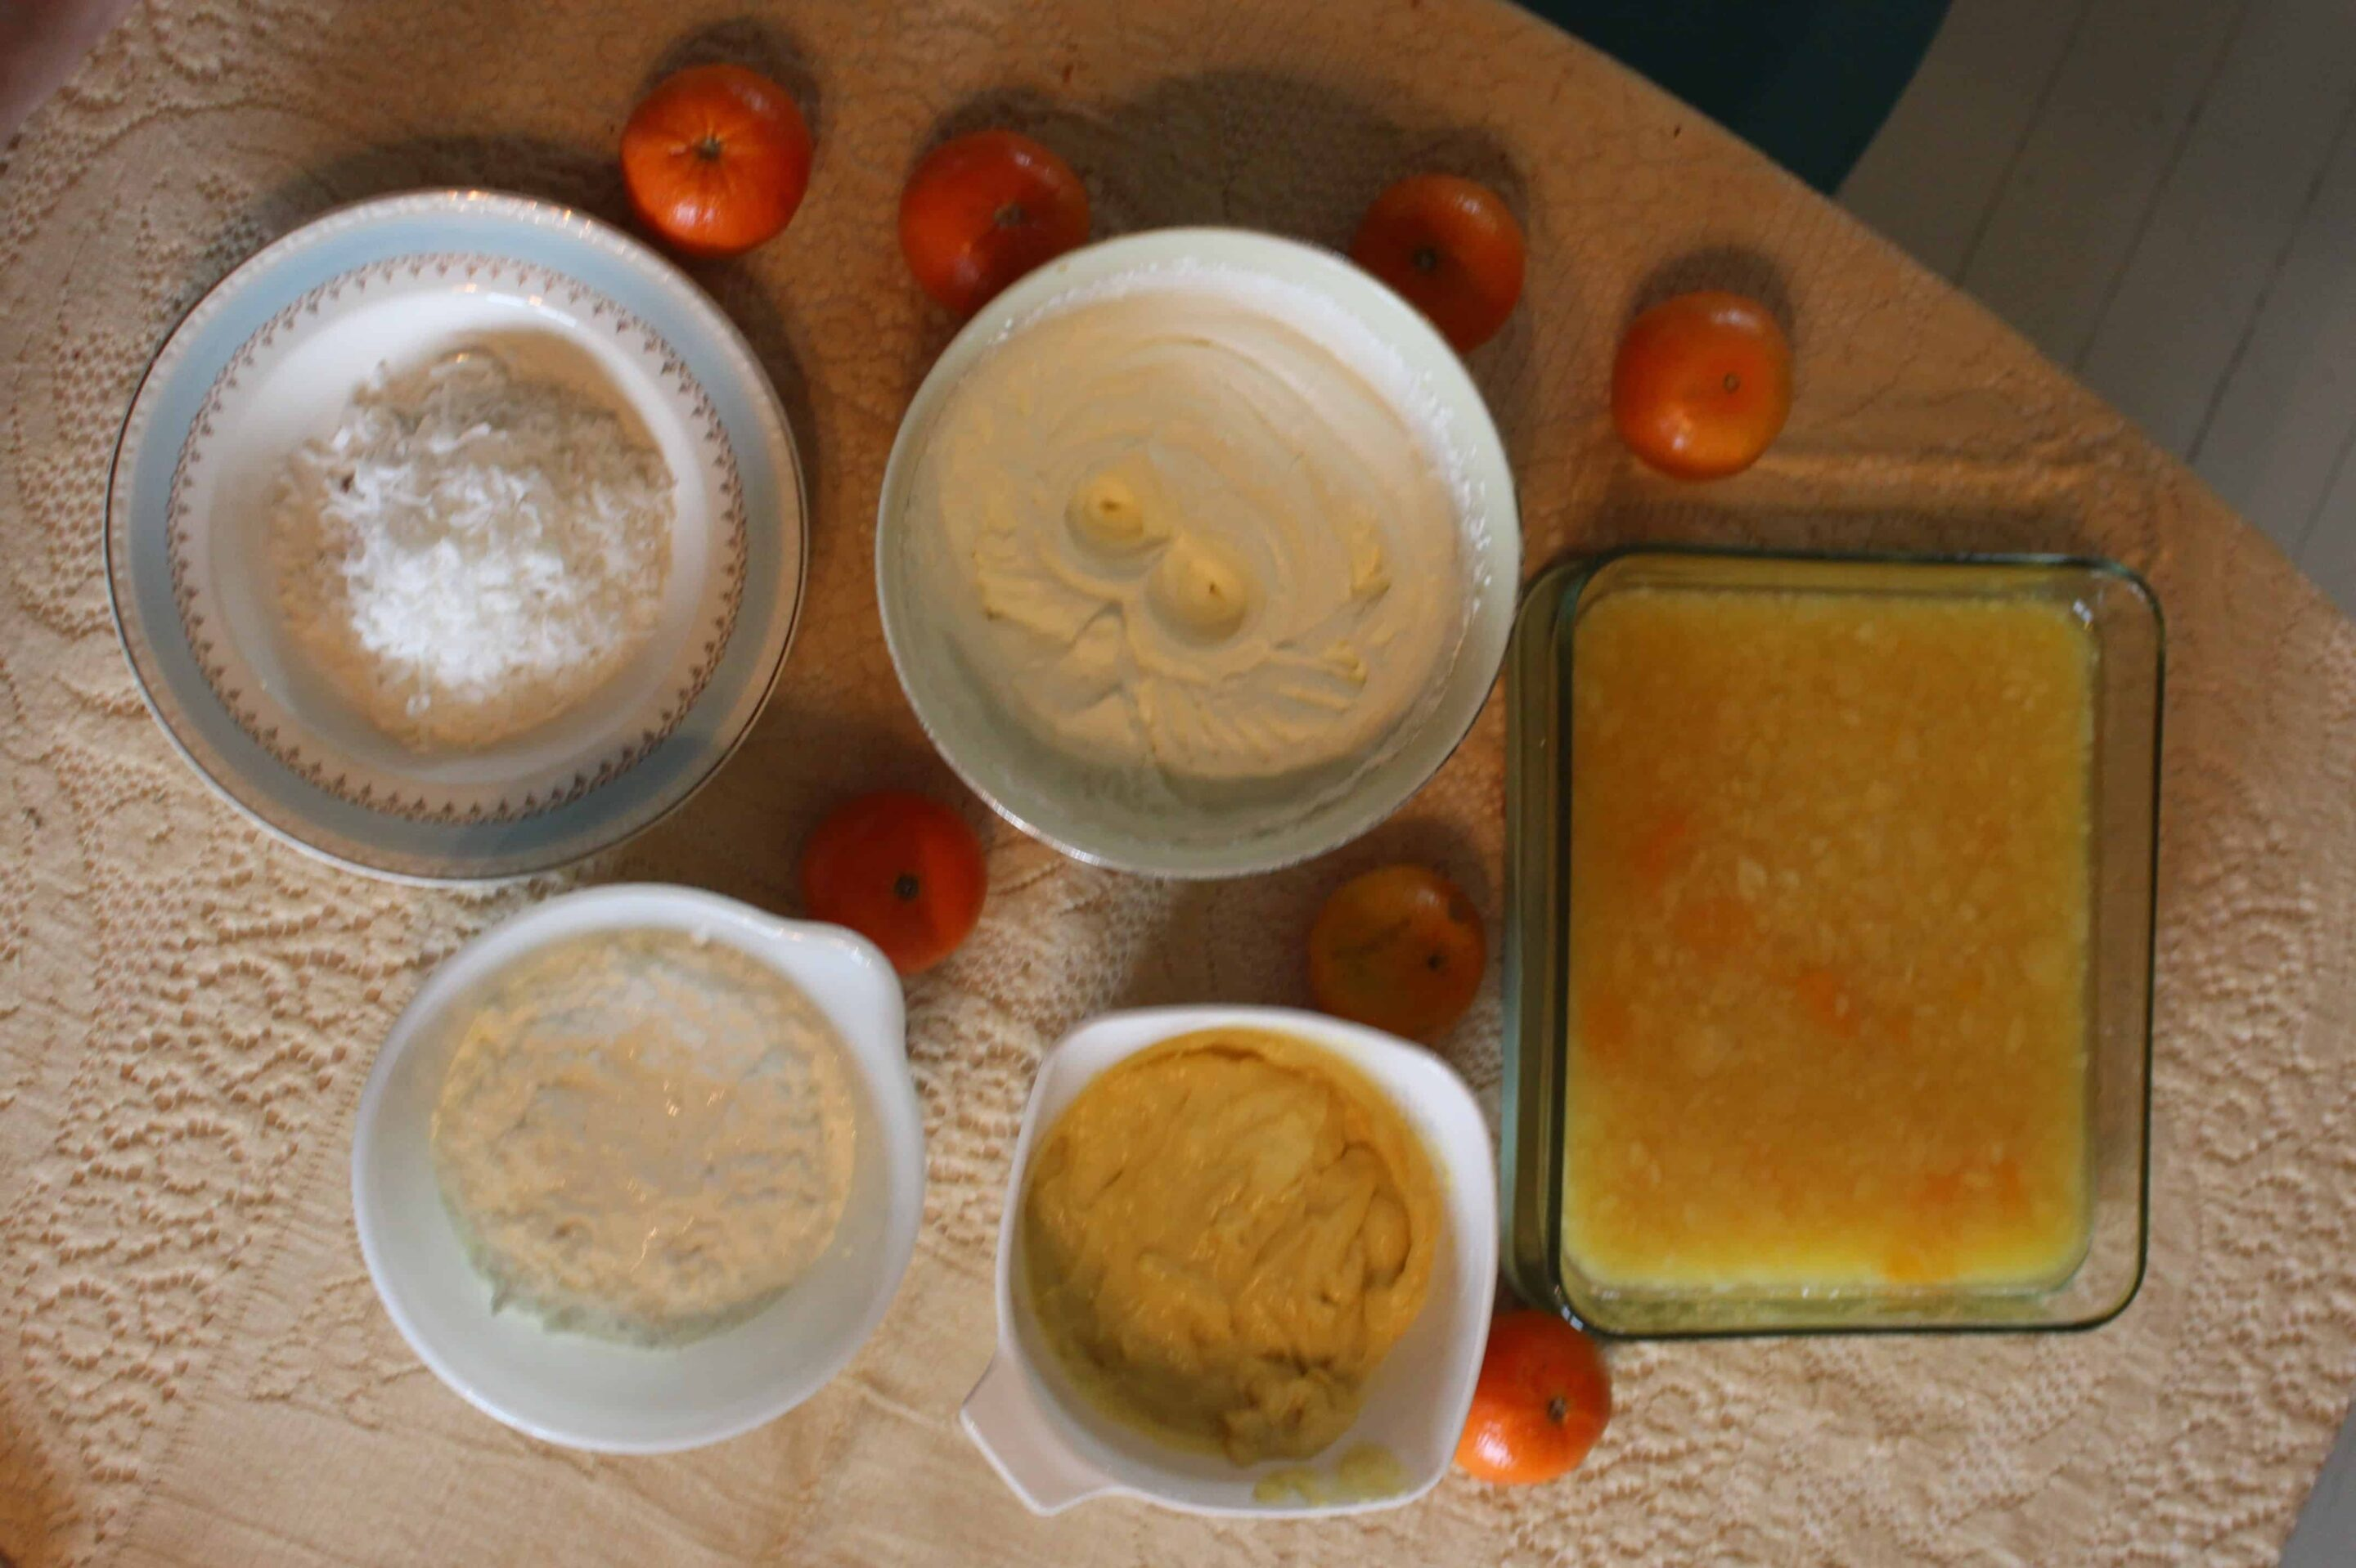 Top left: Coconut, Top middle: Whipped Cream, Far right: Pineapple Mandarin Orange Gelatin, Bottom middle: Pastry Cream, Bottom Left: Cottage Cheese